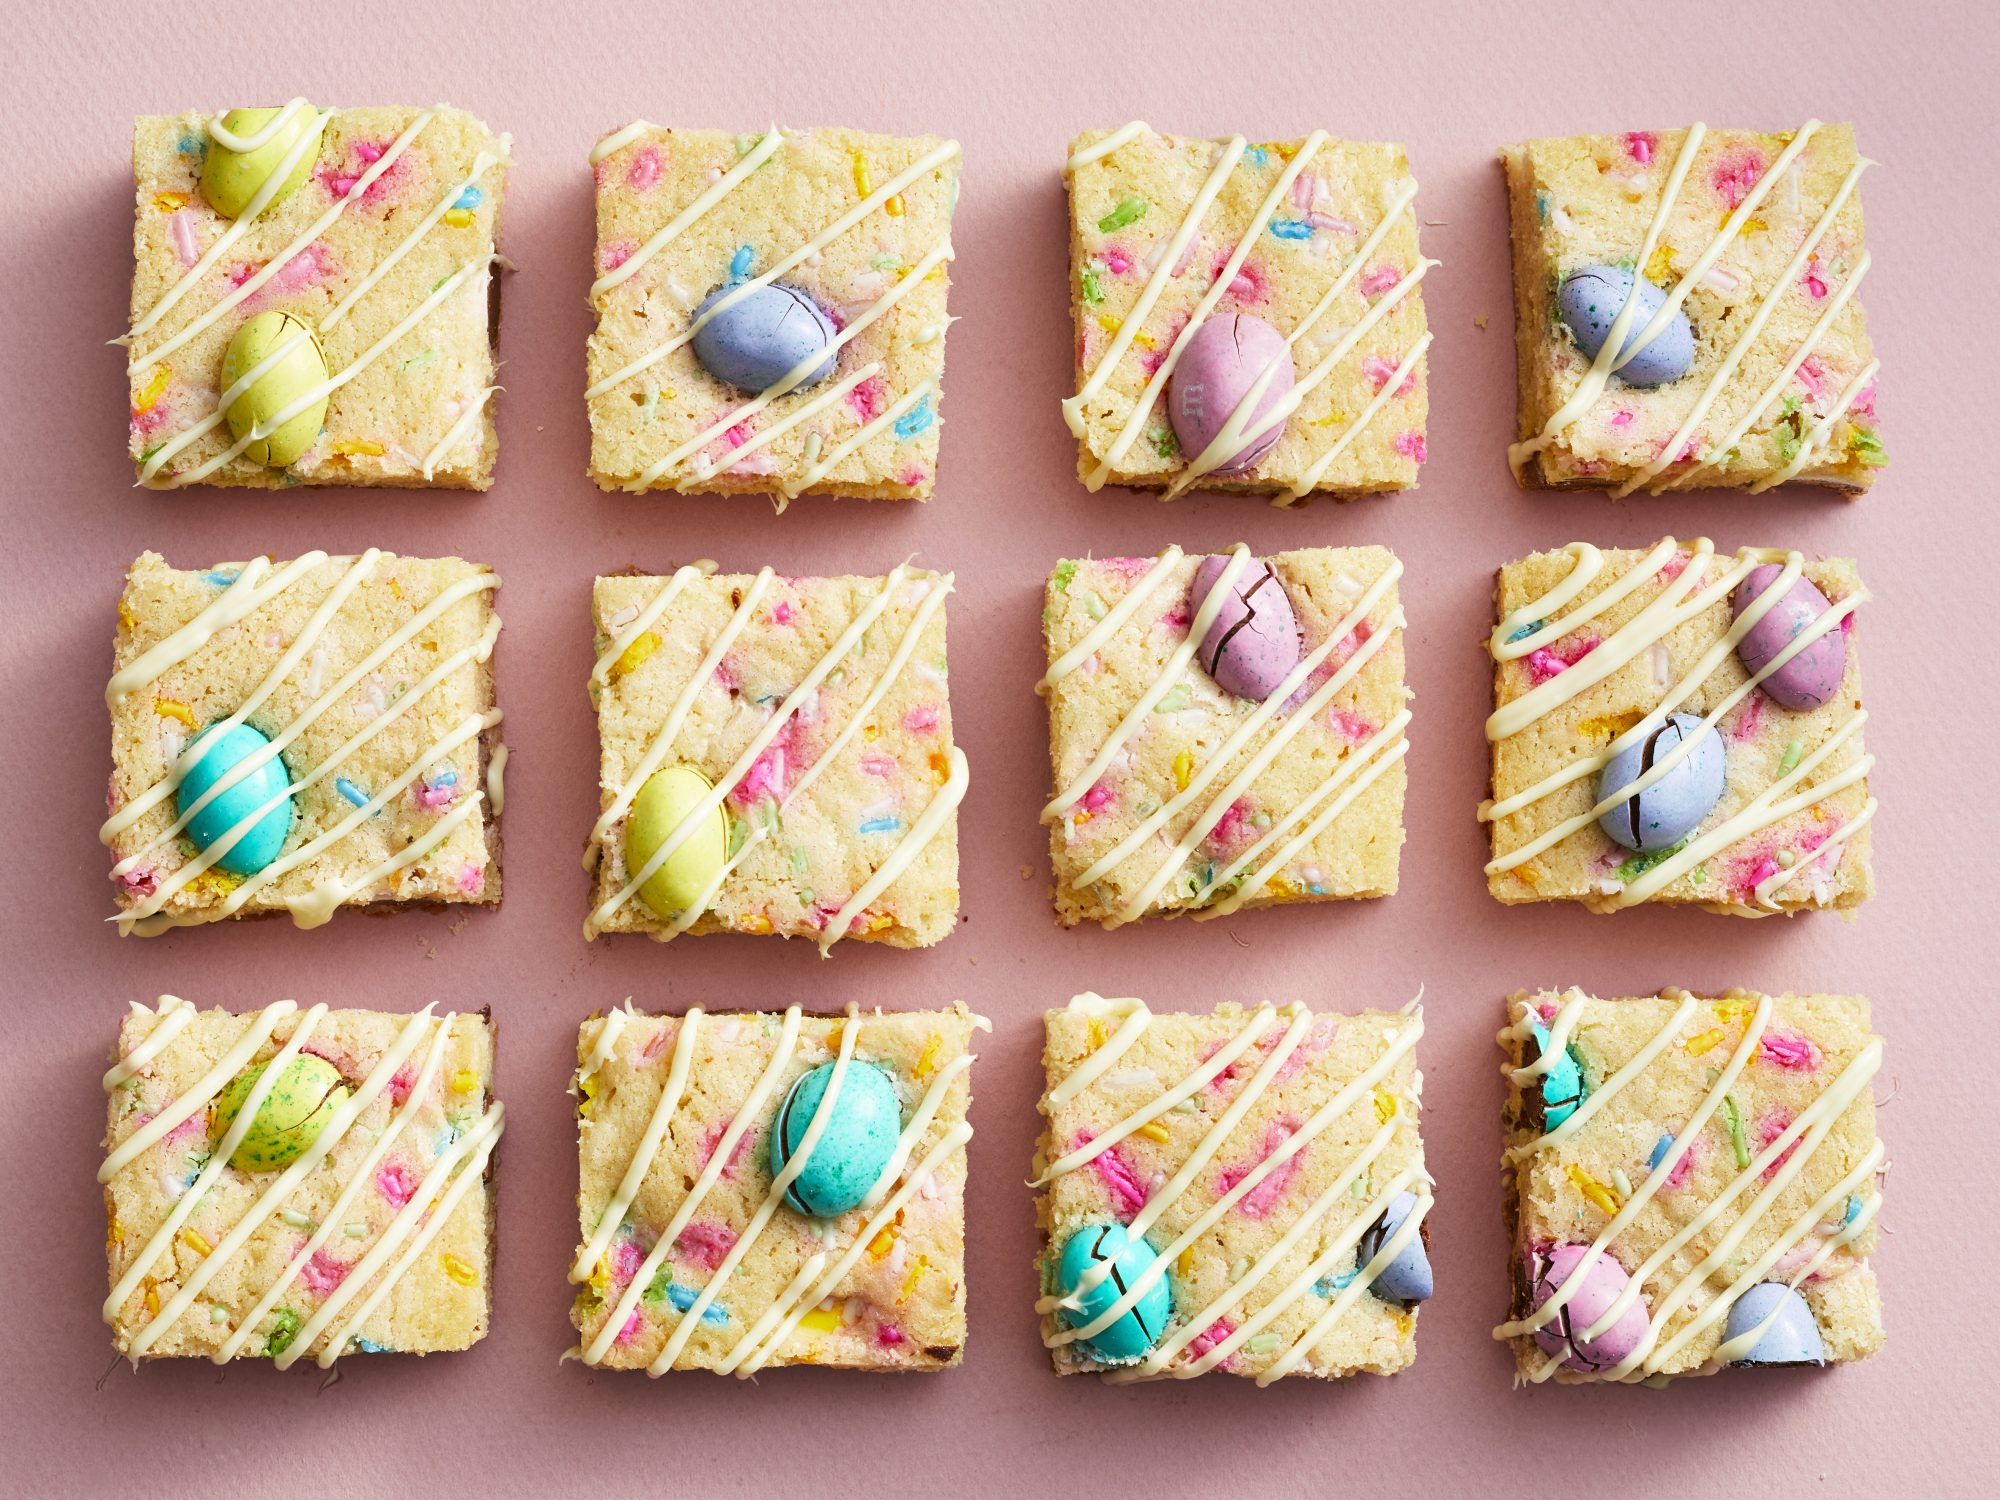 Decorate Your Table with These Colorful Easter Snack Cakes